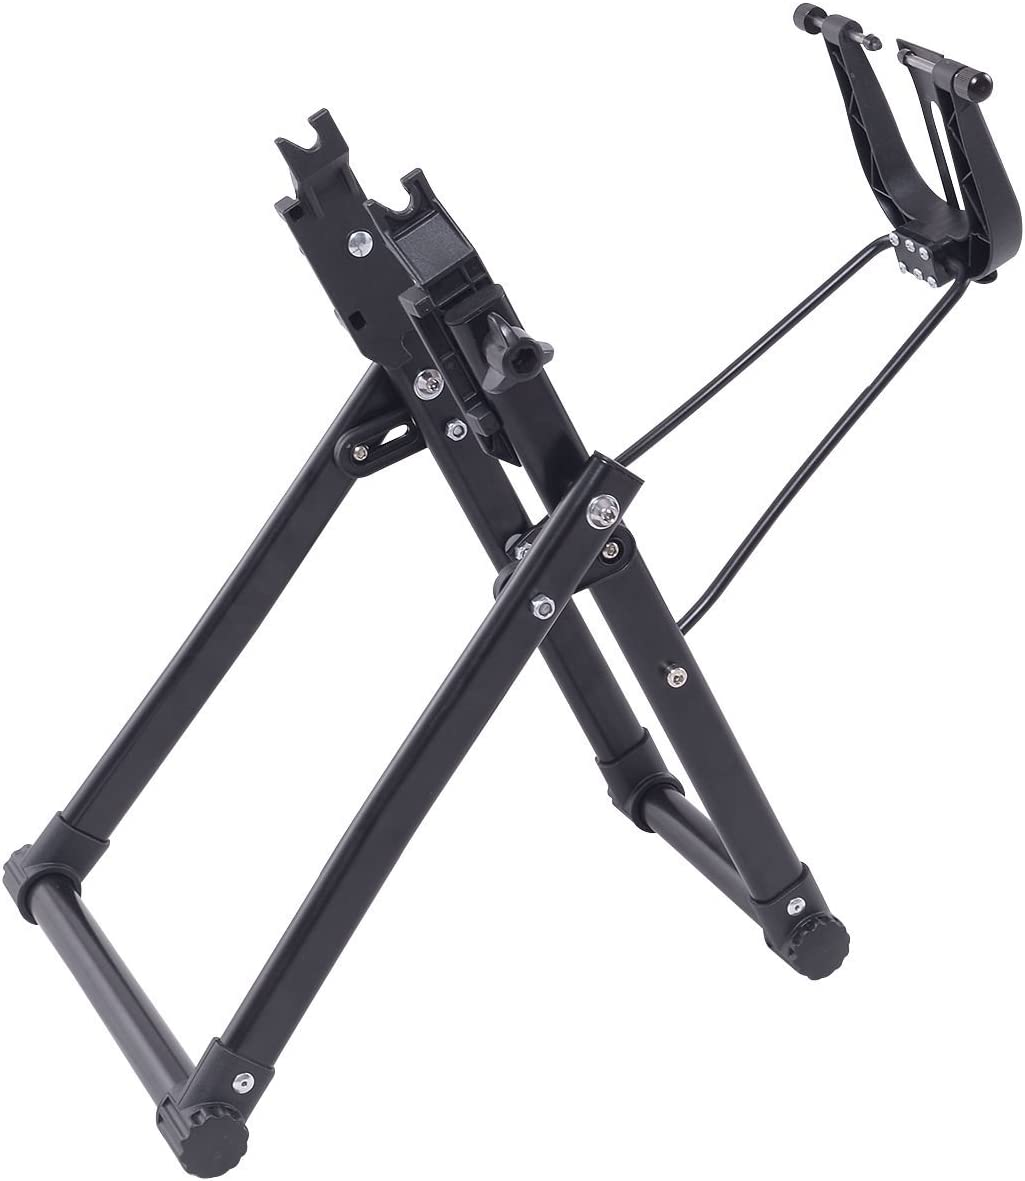 Goplus Wheel Truing Stand, Bike/Bicycle Tire Truing Stand, Foldable